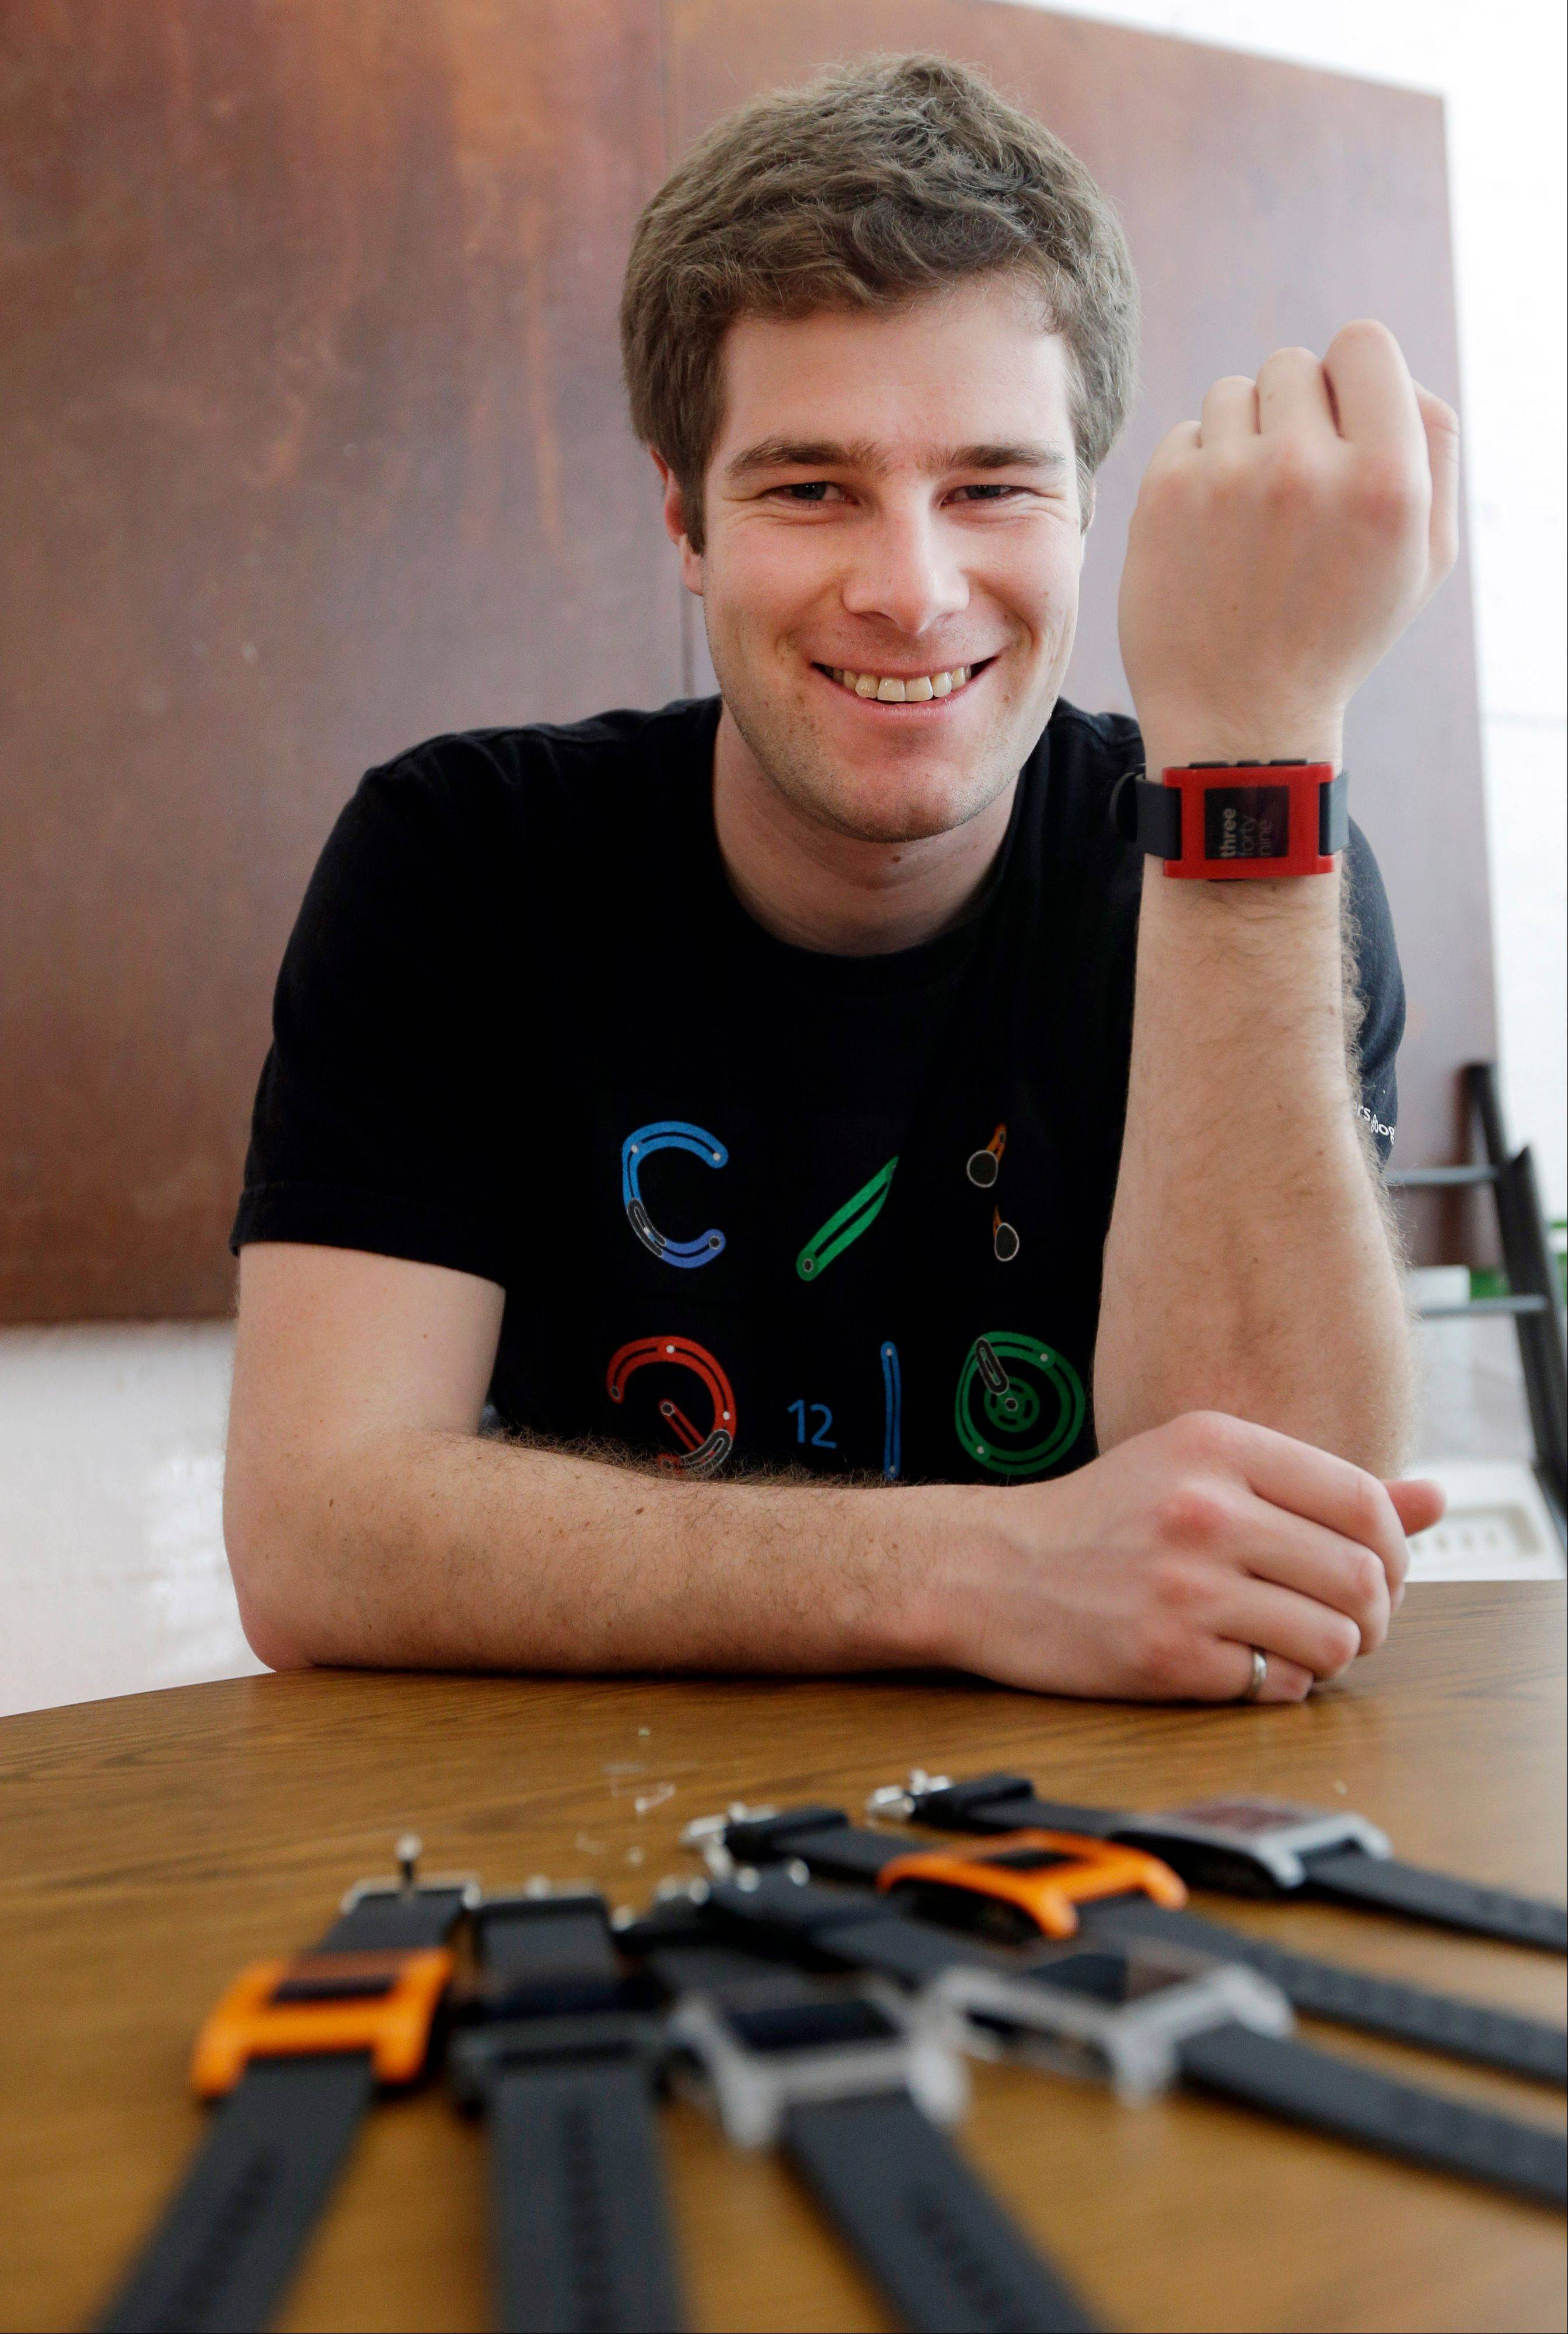 Eric Migicovsky, CEO of Pebble, displays his company's smart watch in Palo Alto, Calif. This new watch not only tells time, but also connects to smart phones within 10 meters.